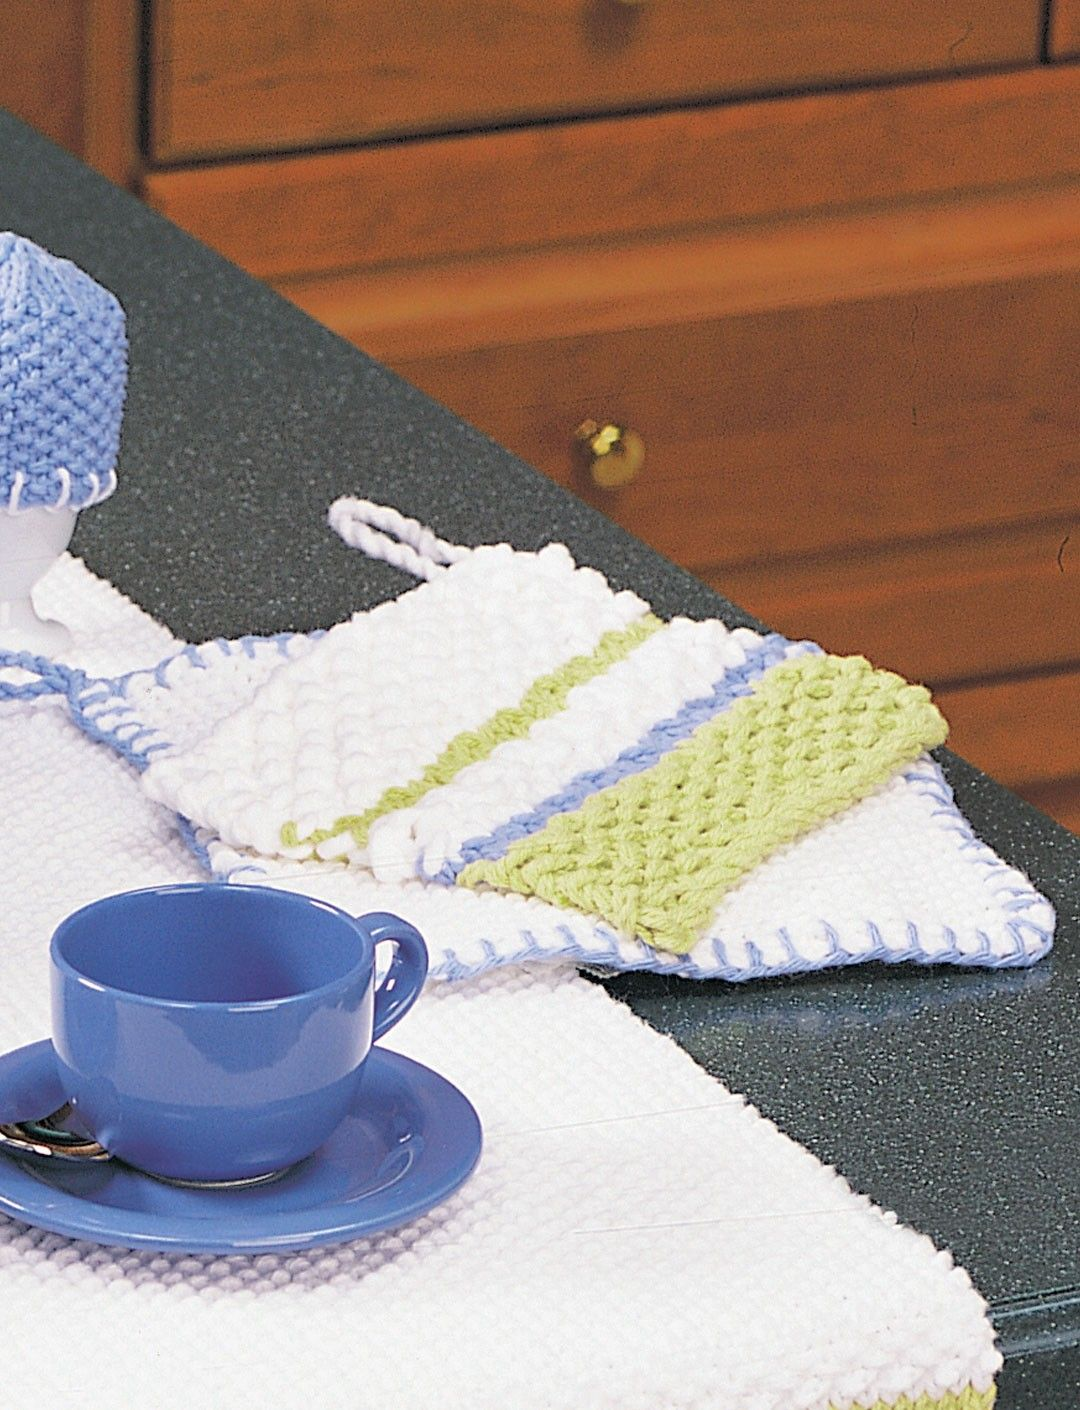 Yarnspirations.com - Lily Striped Pot Holder - Patterns ...